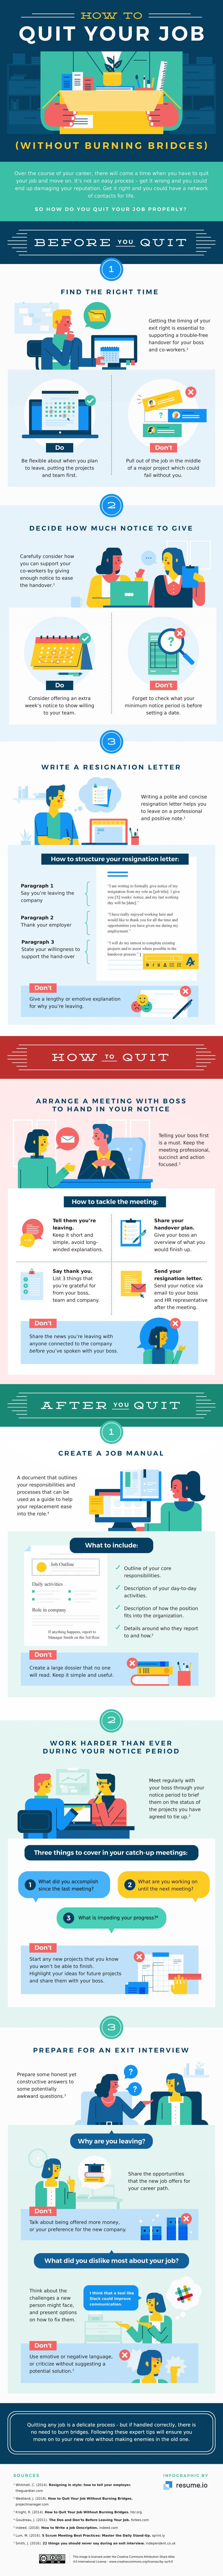 Infographic: How To Quit Your Job